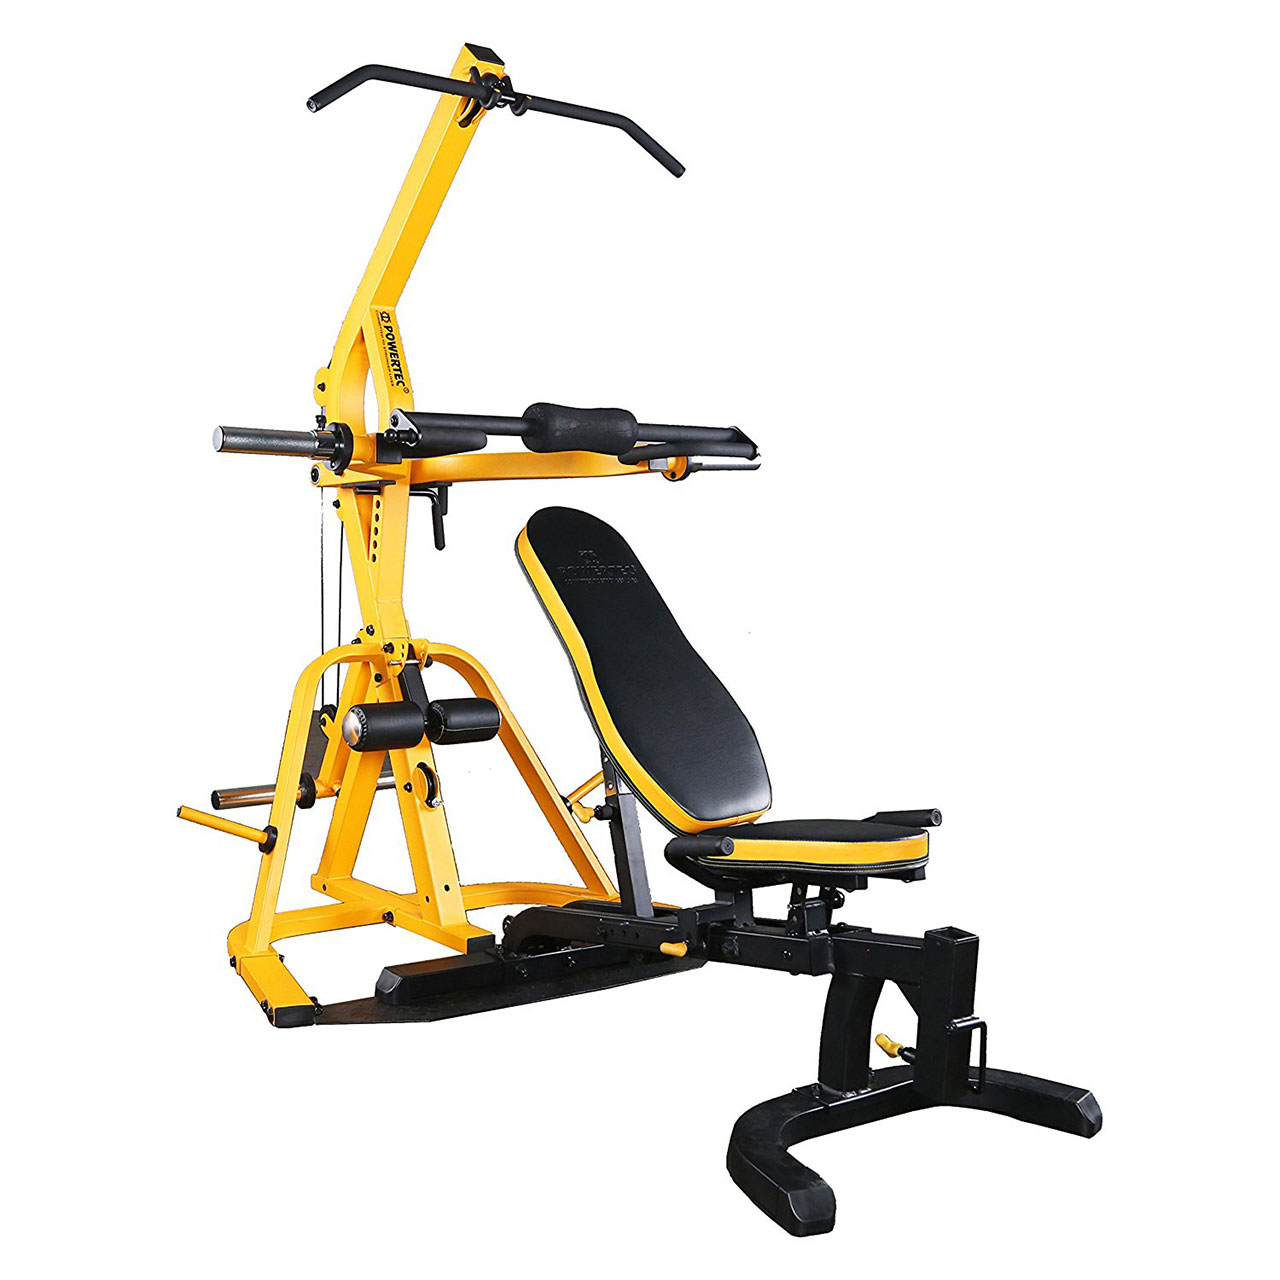 Powertec Workbench Levergym Yellow by Powertec